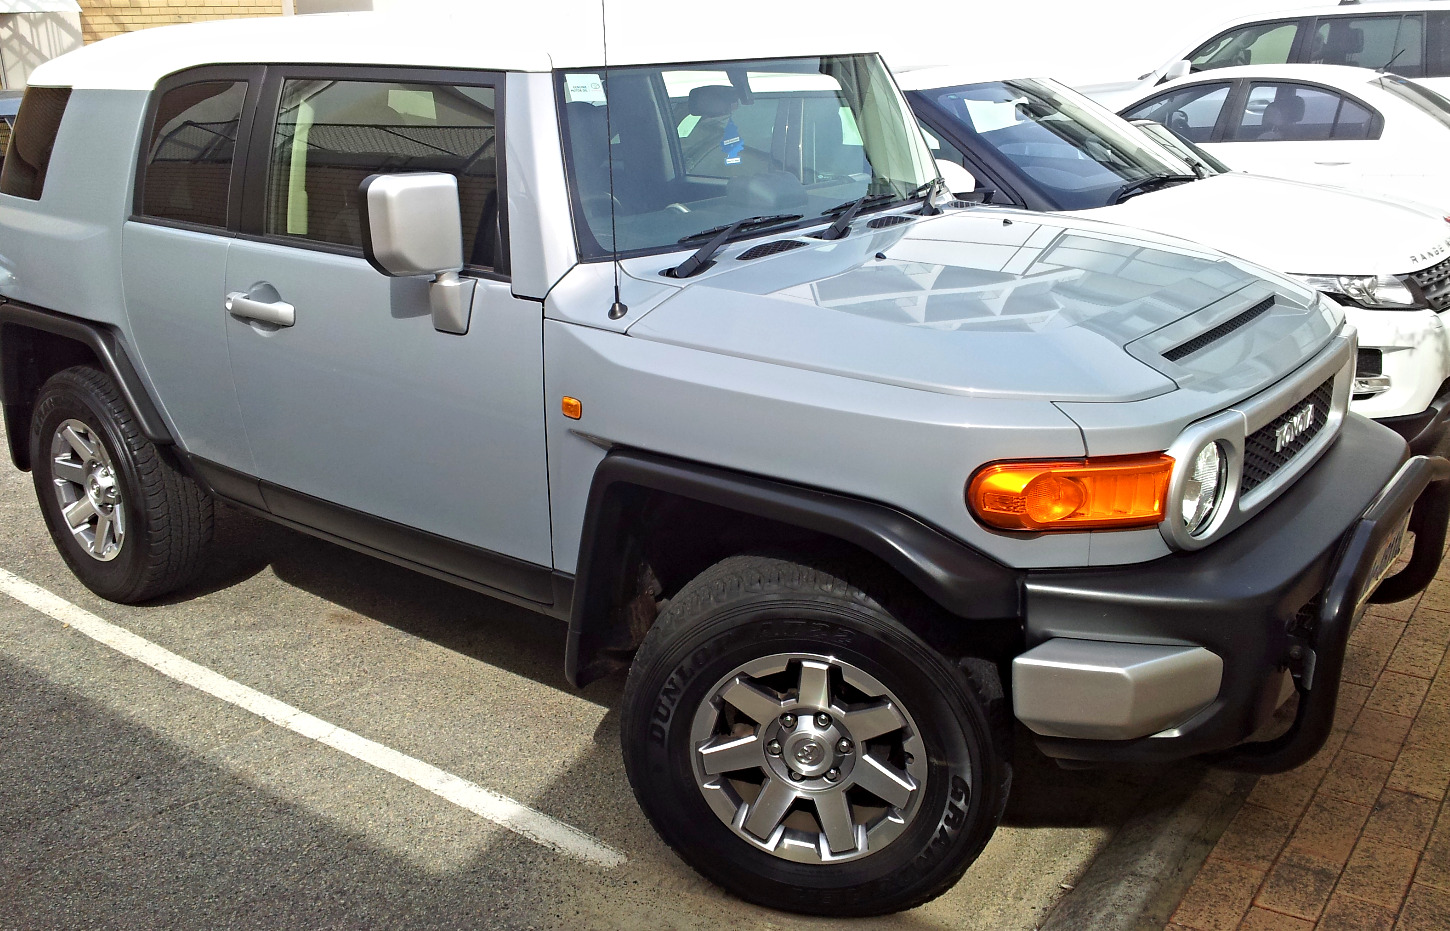 Car Detailing Perth - FJ Cruiser